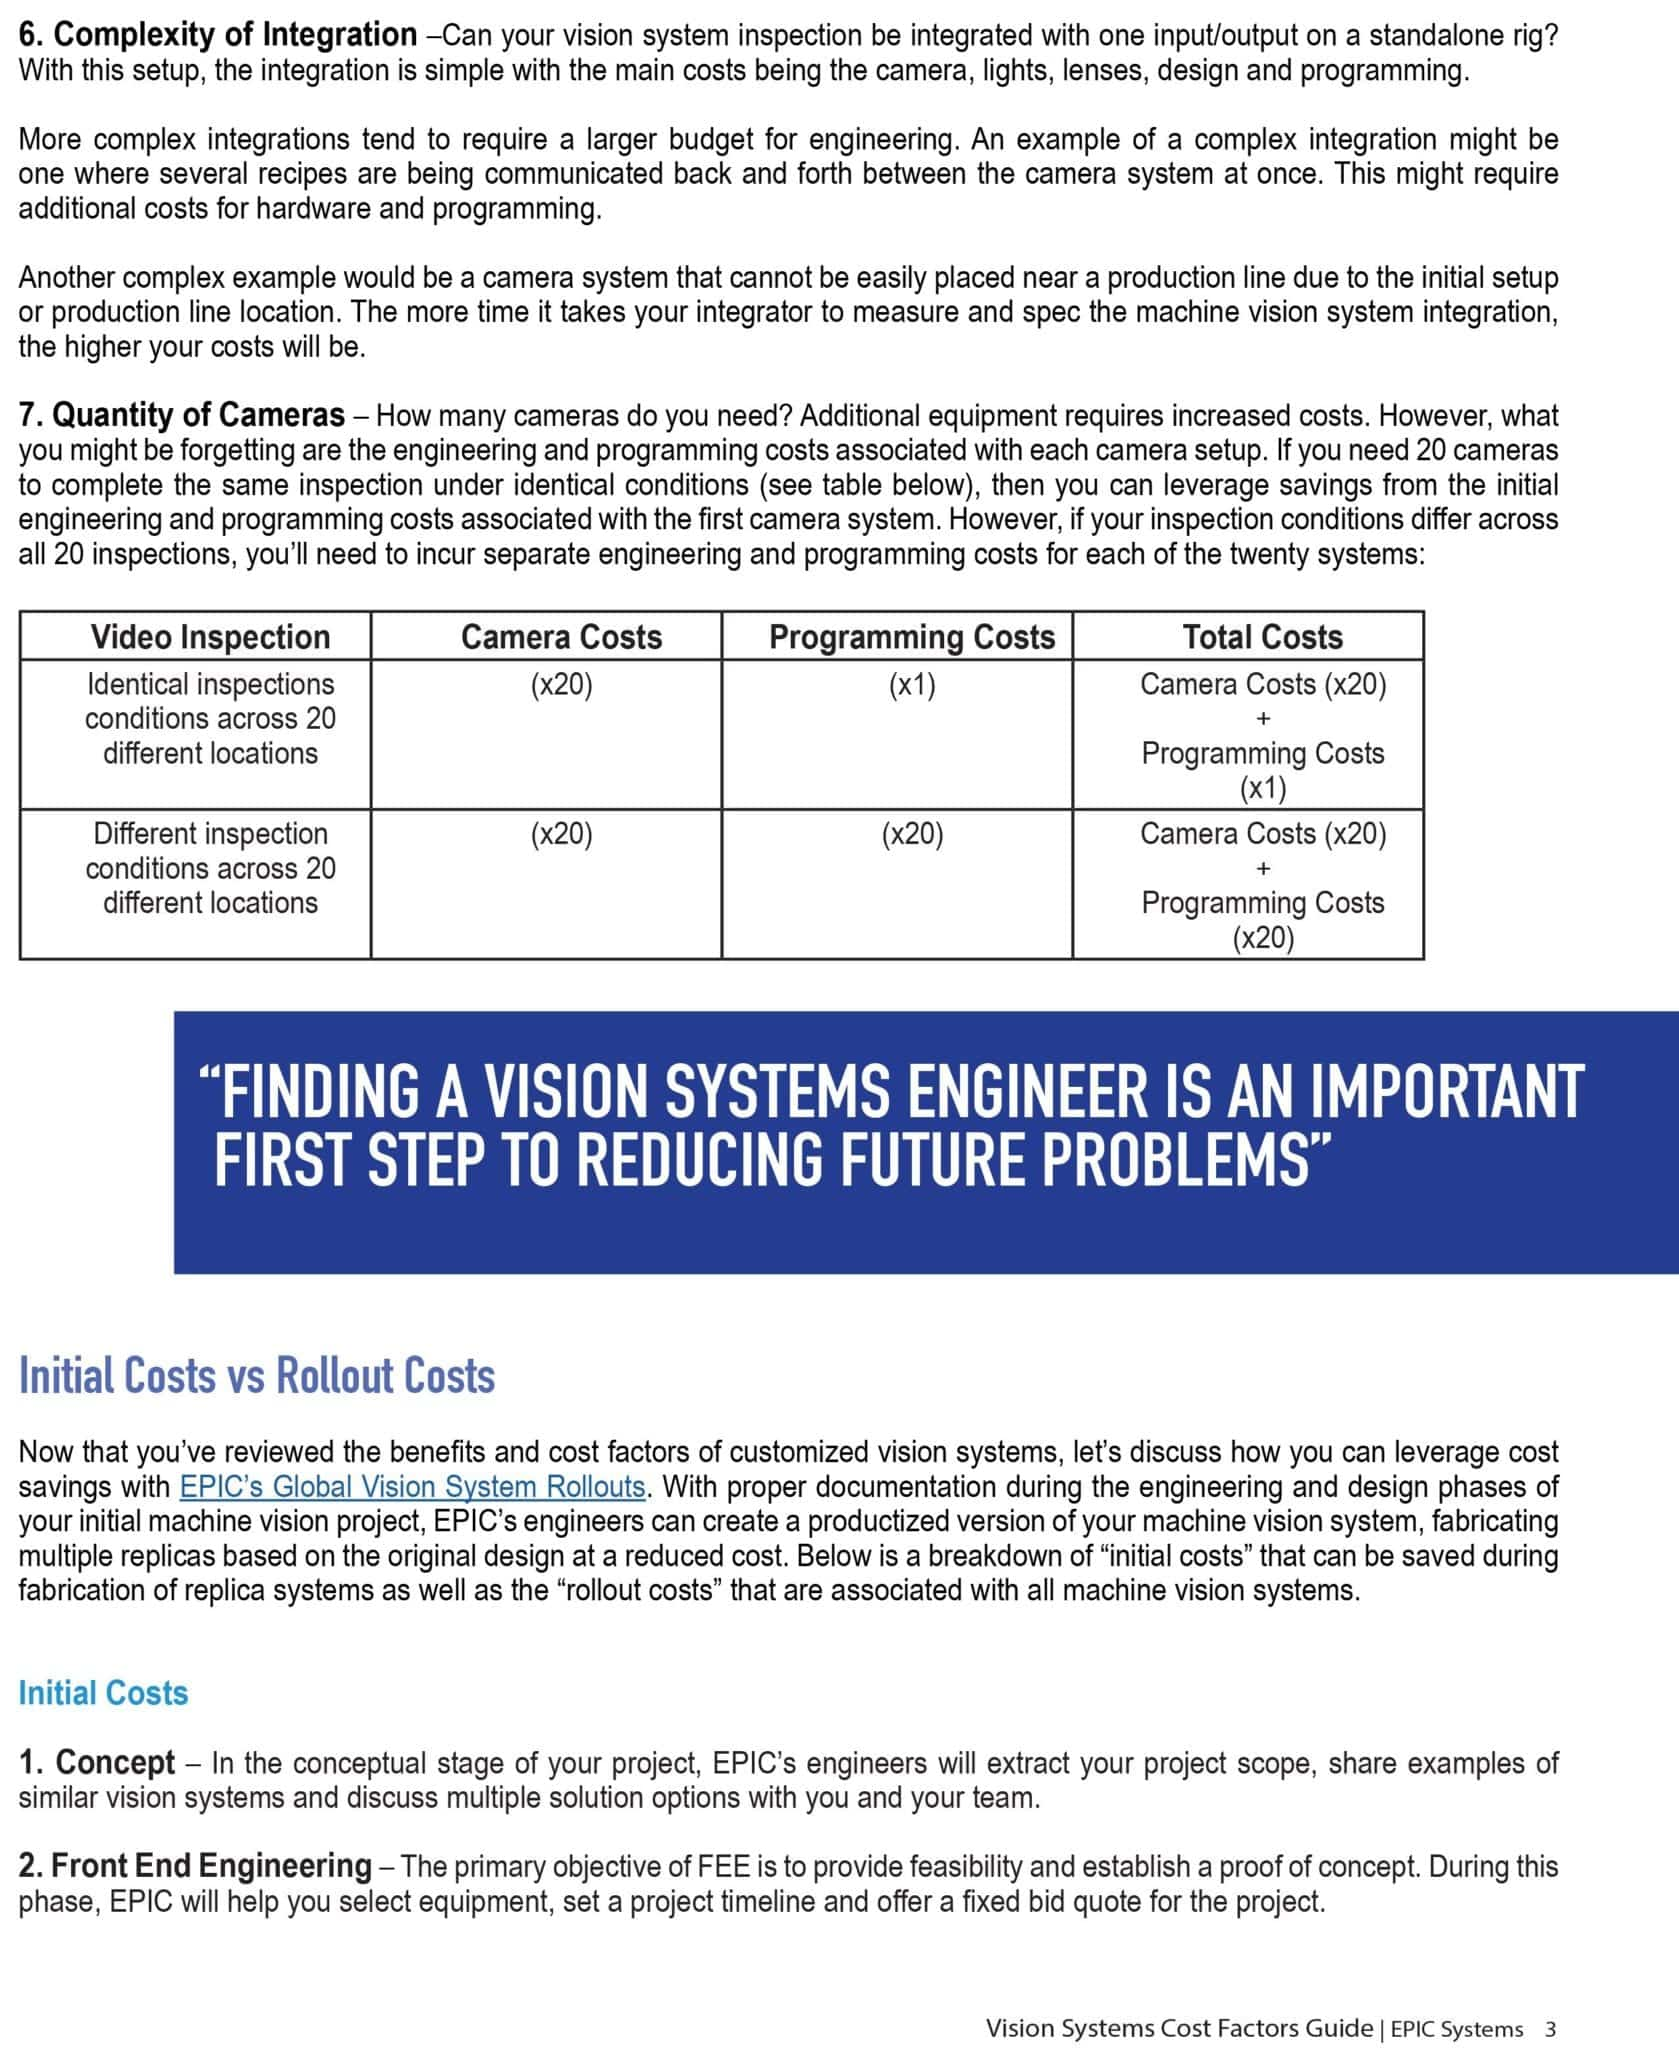 First page of vision systems cost factors guide